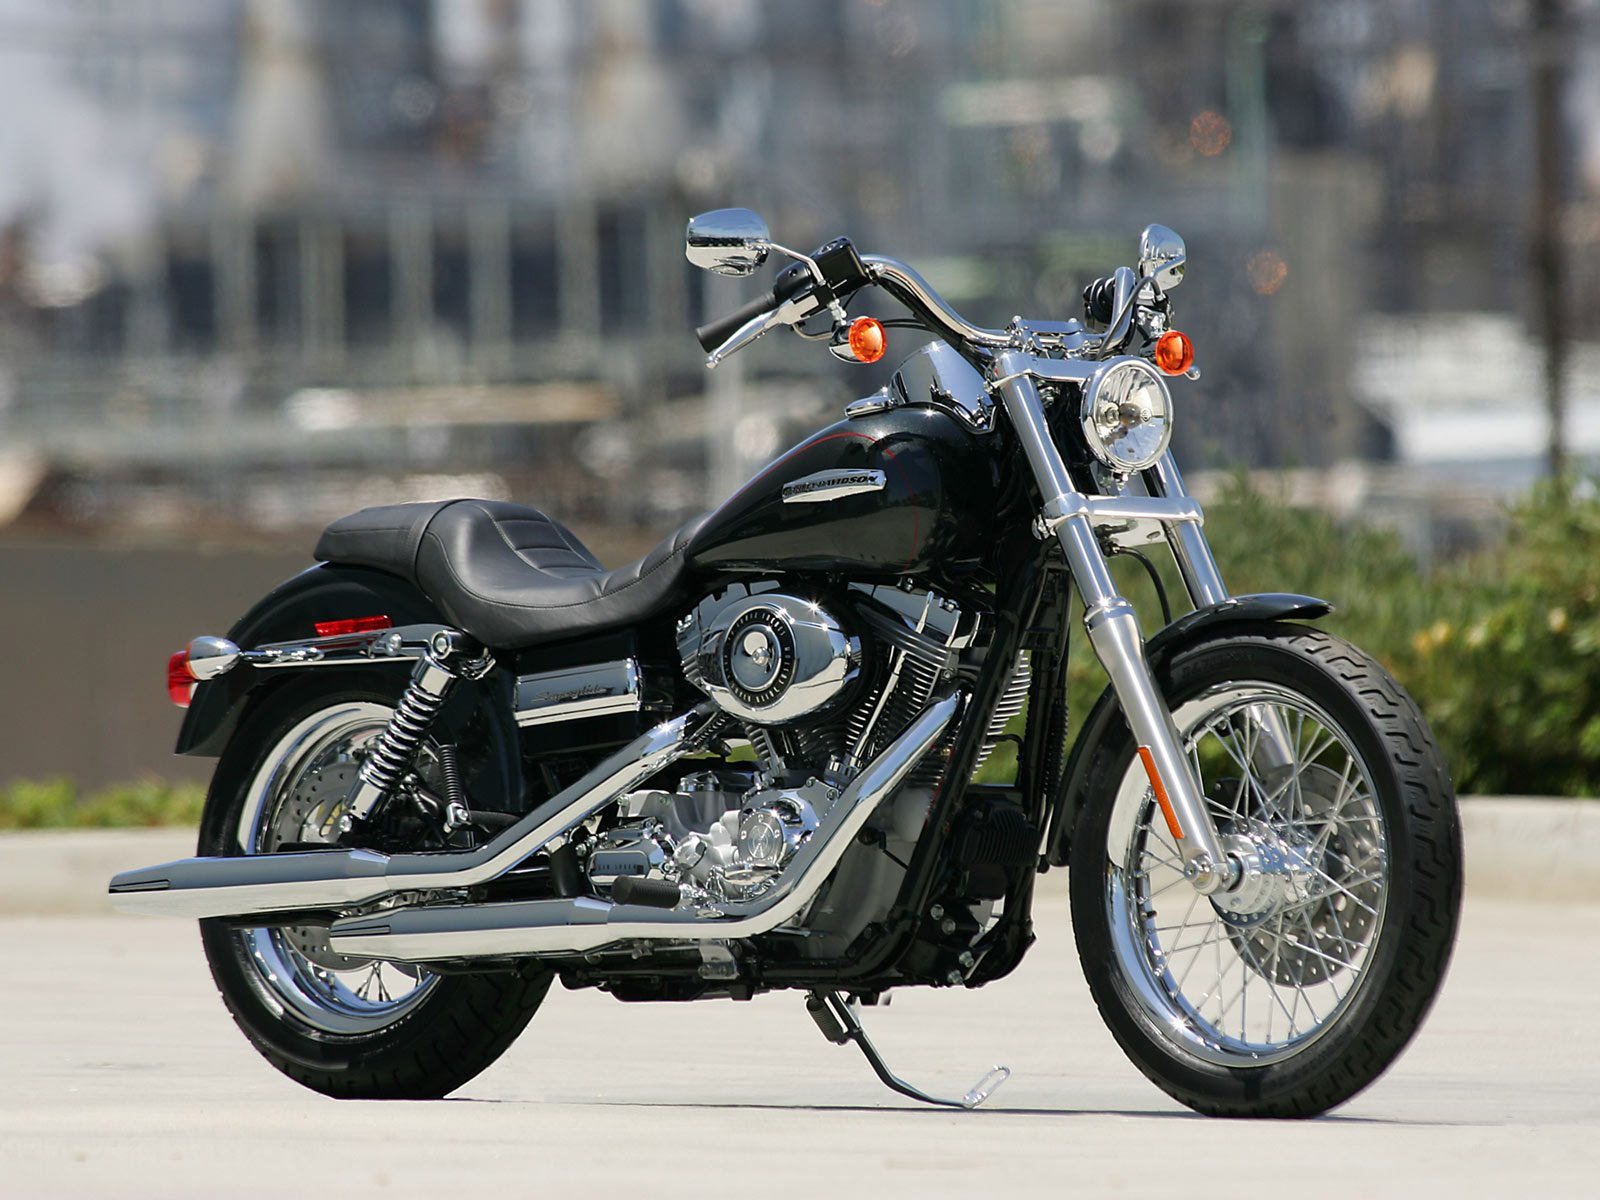 Harley-davidson dyna photo - 4